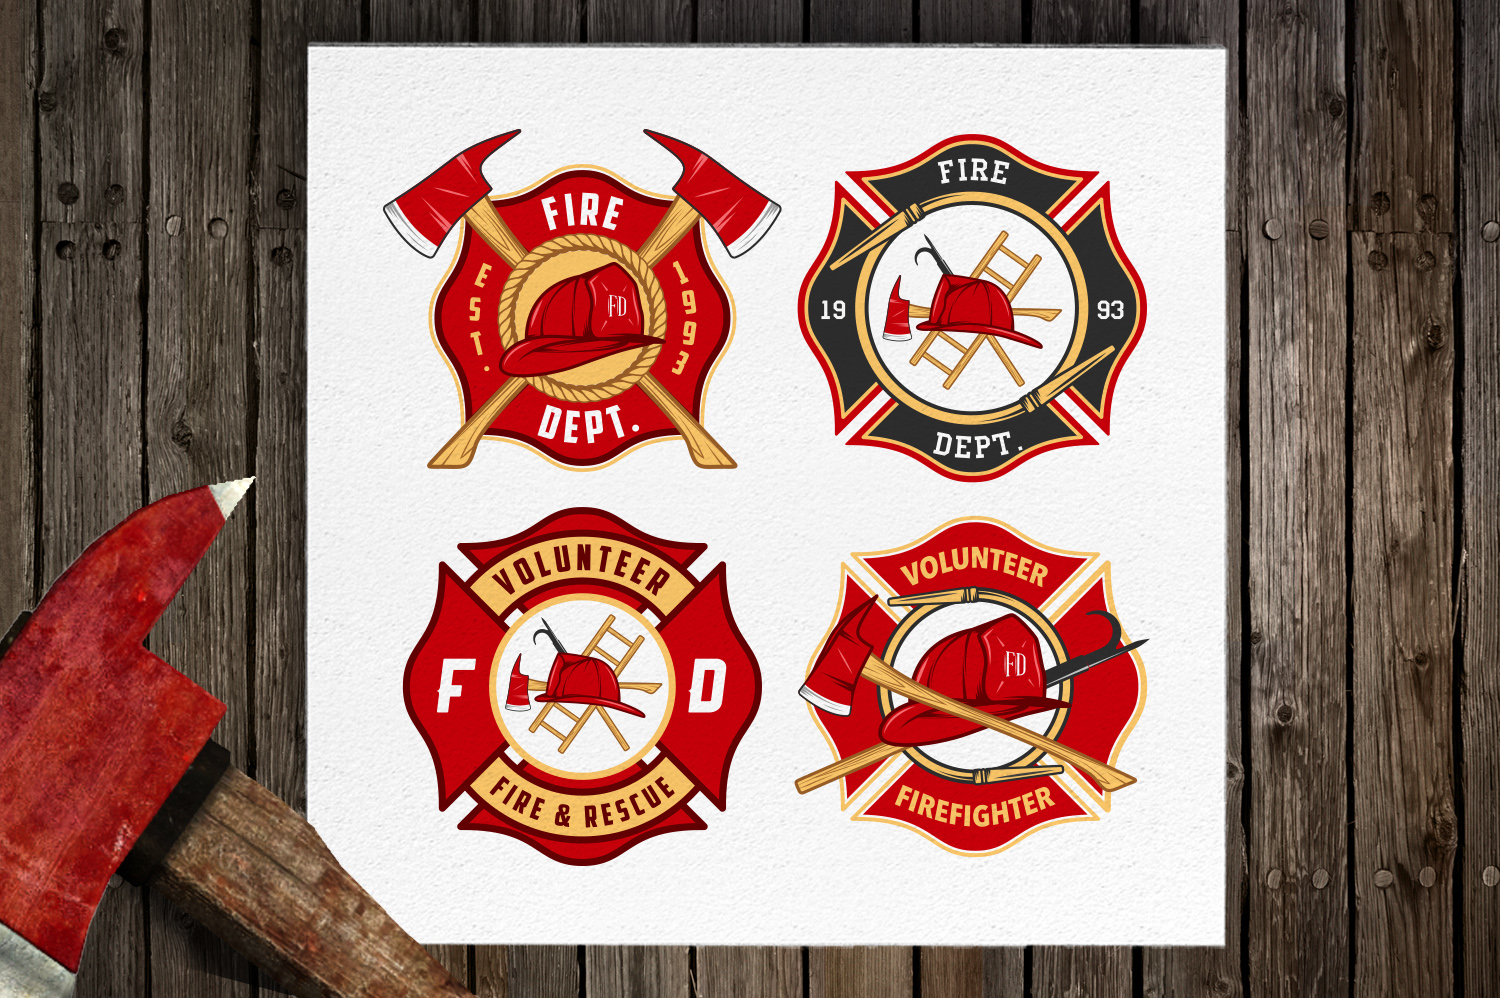 Fire-department-emblems-and-patches